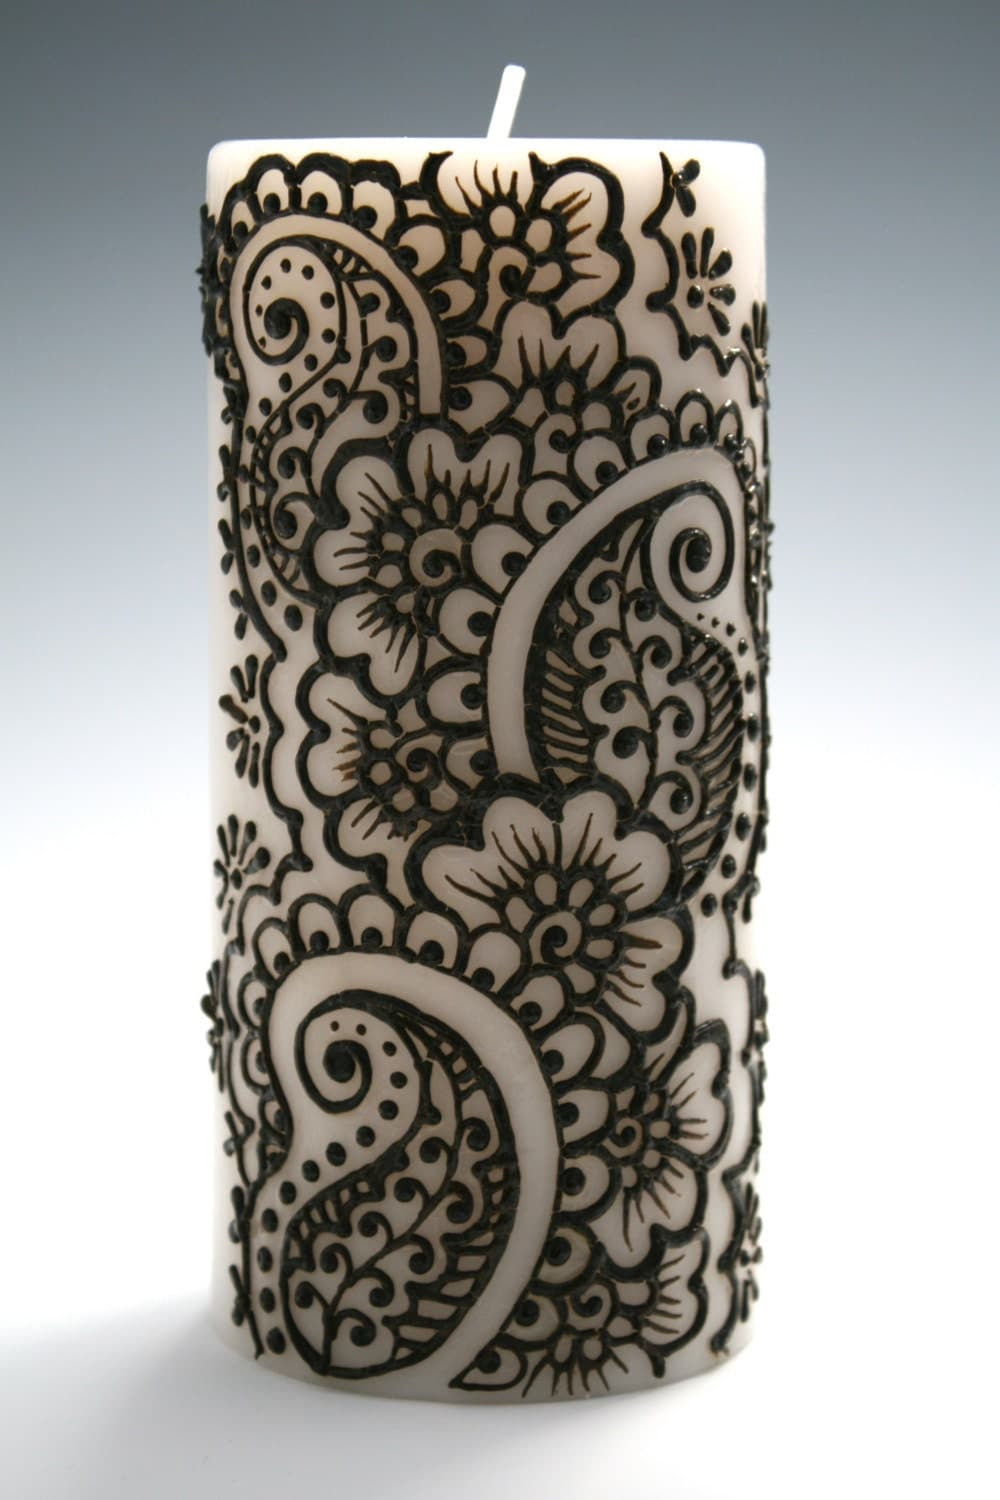 Henna Candle with Intricate Indian Style Design by ...